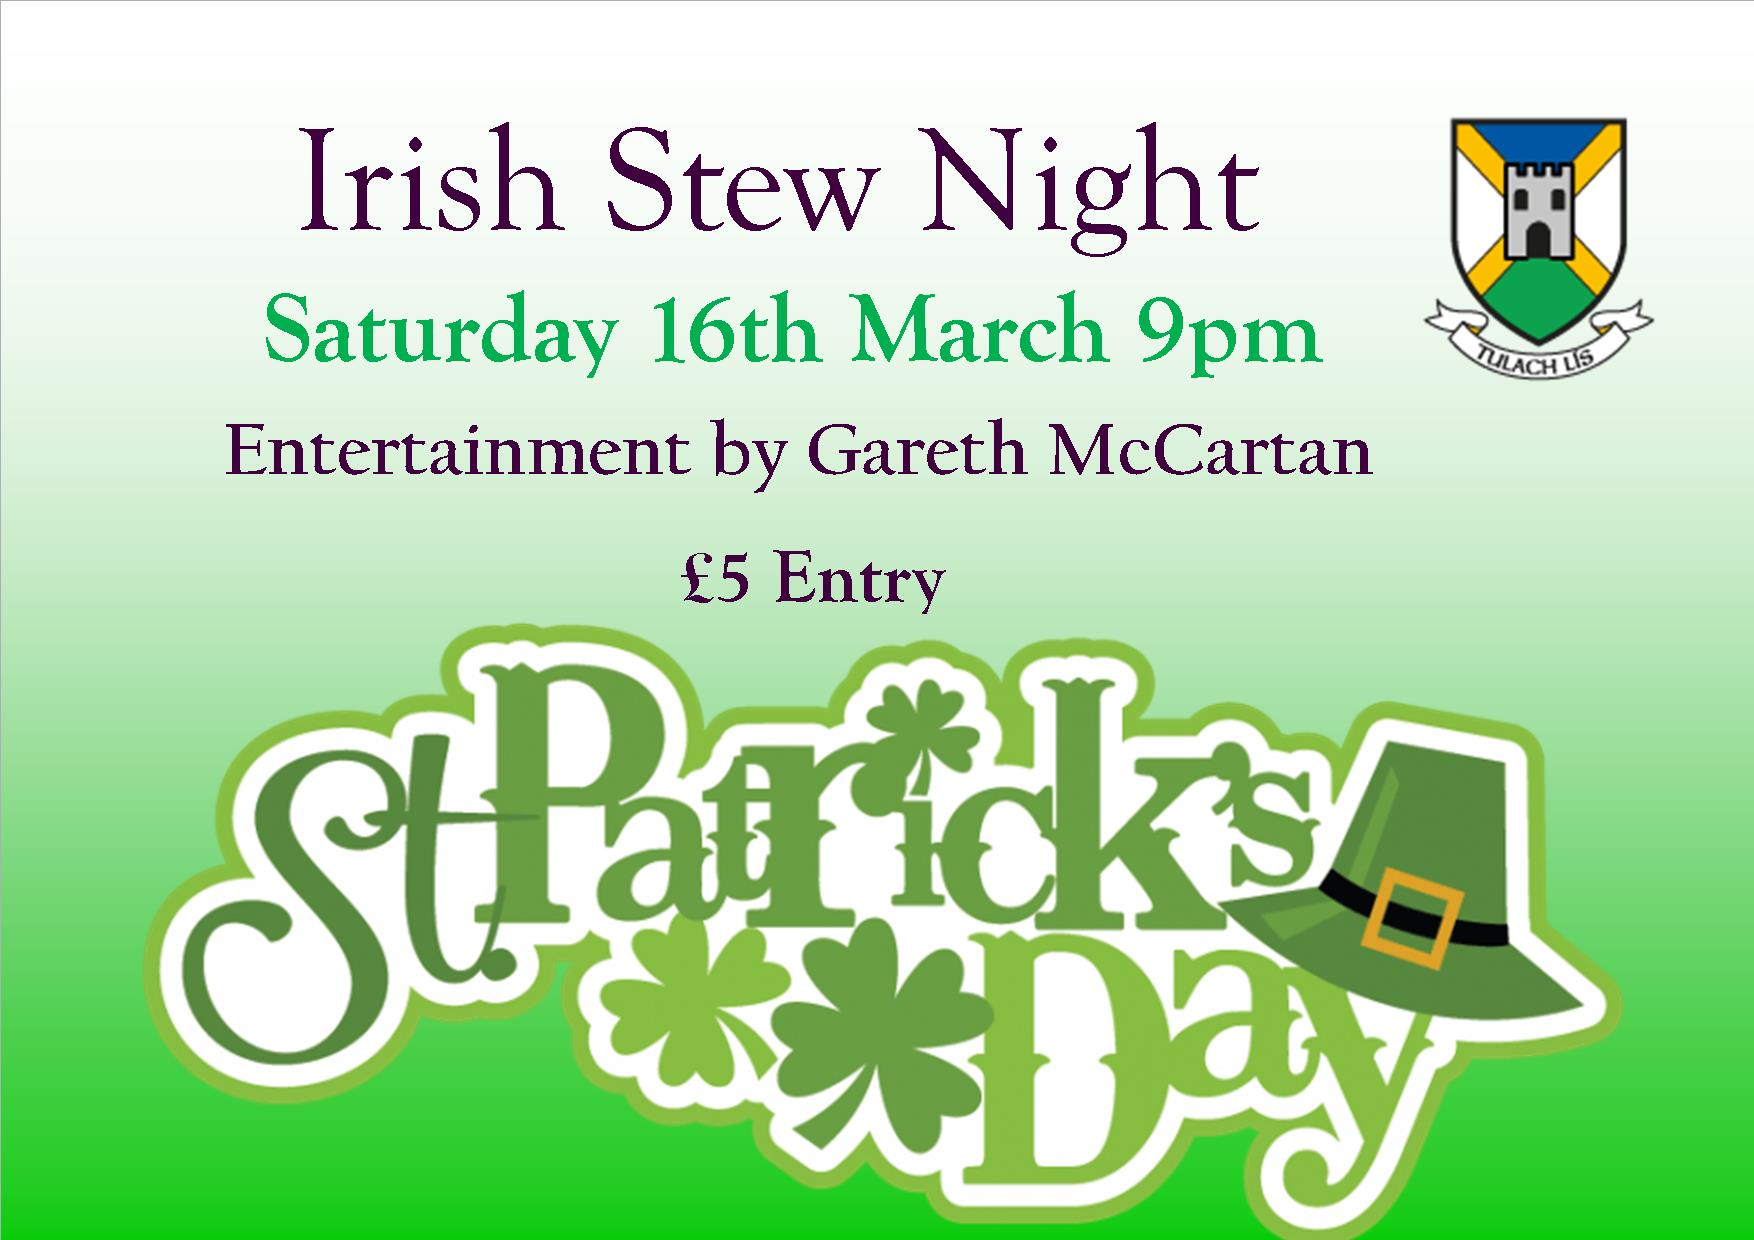 St. Patrick Celebration Night & Stew Night